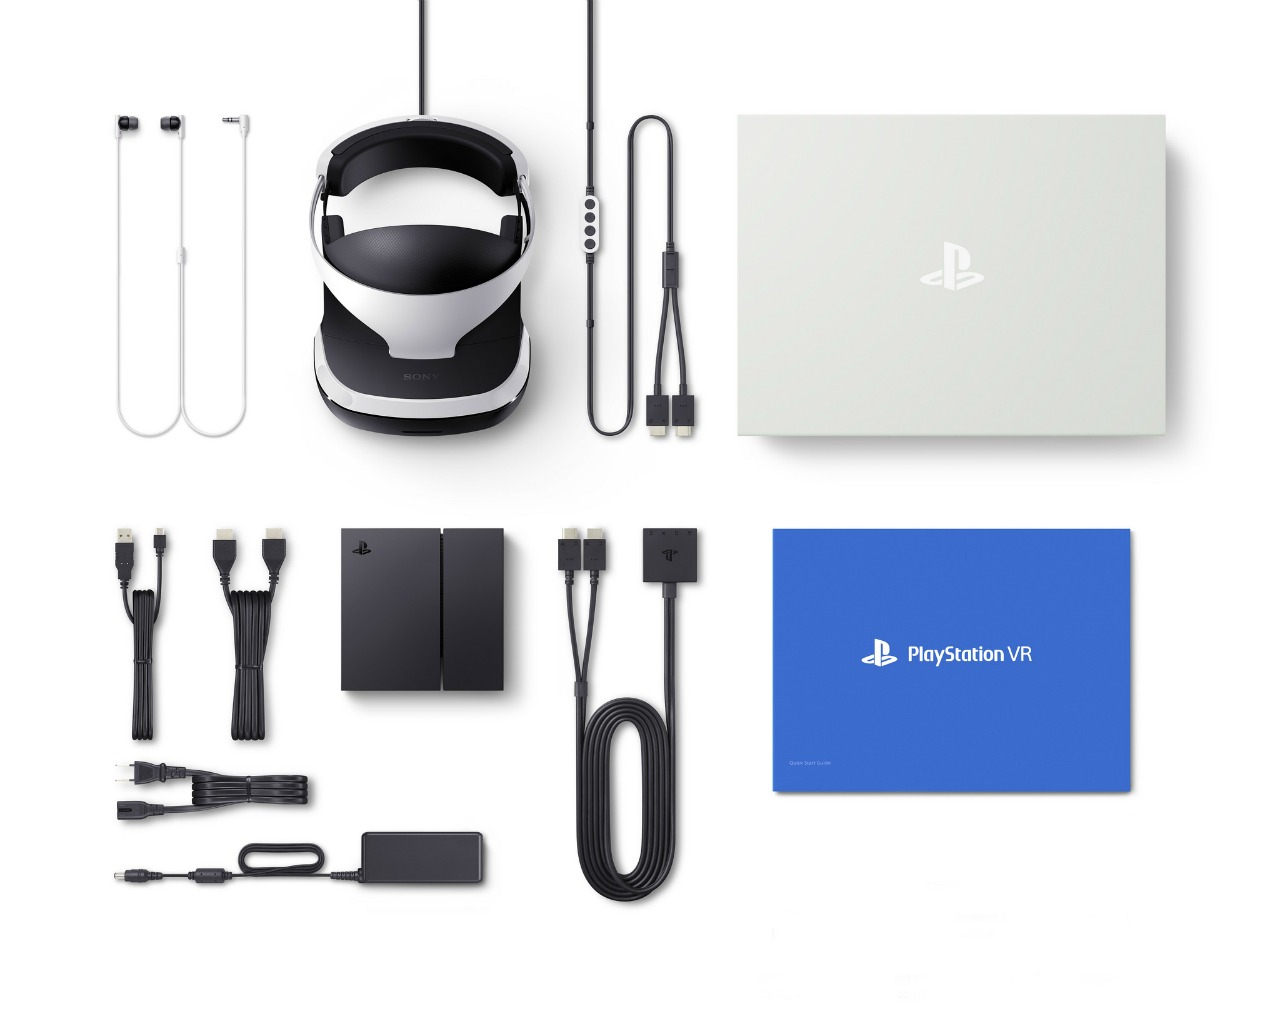 56e910367c89c_PlayStationVR1.jpg